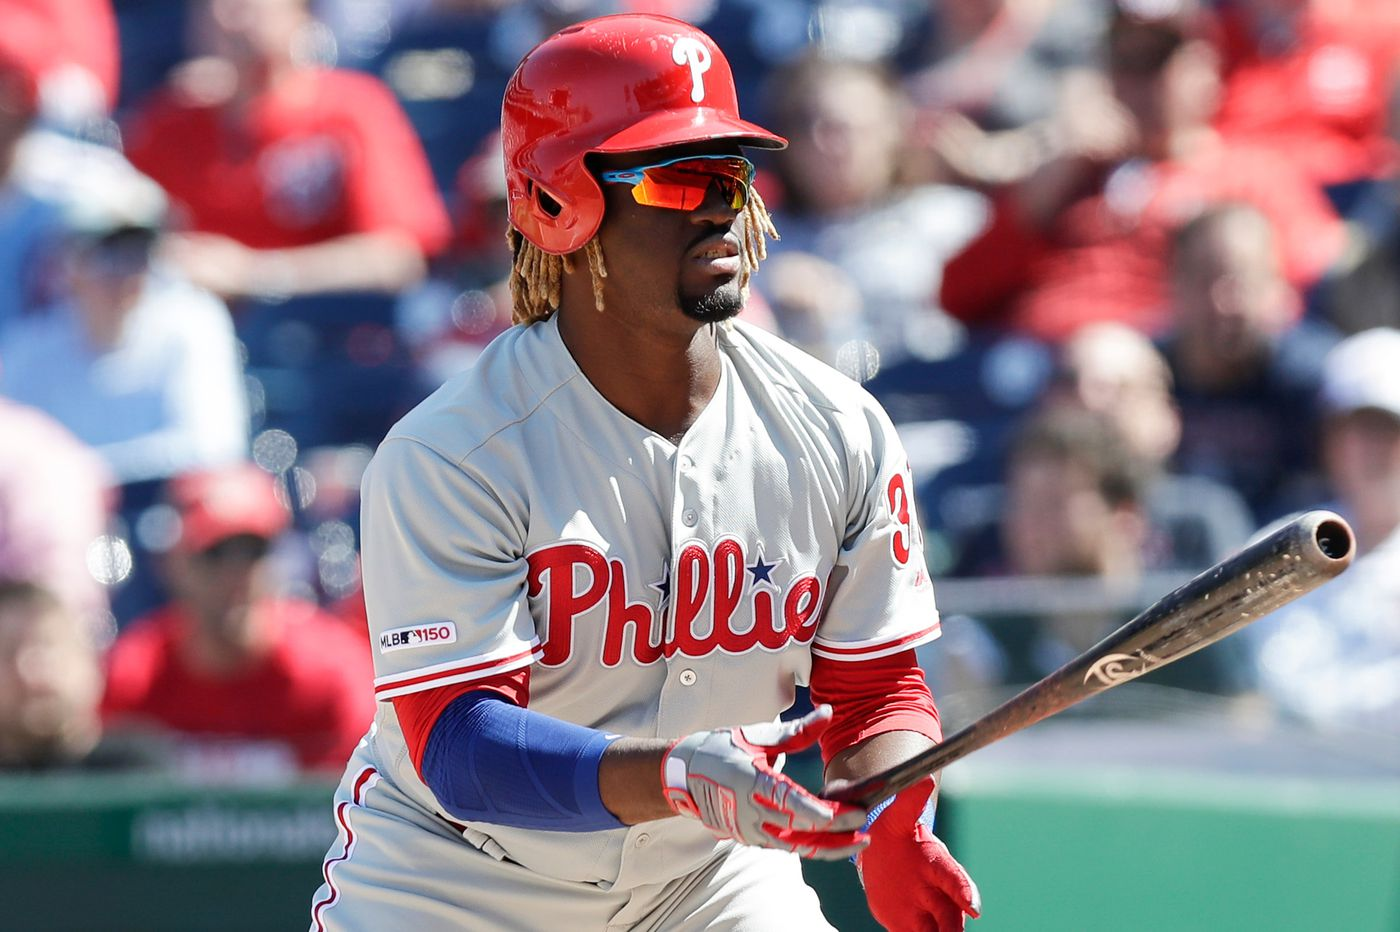 With Phillies' Odubel Herrera on leave after arrest, Nick Williams, Scott Kingery to receive more playing time